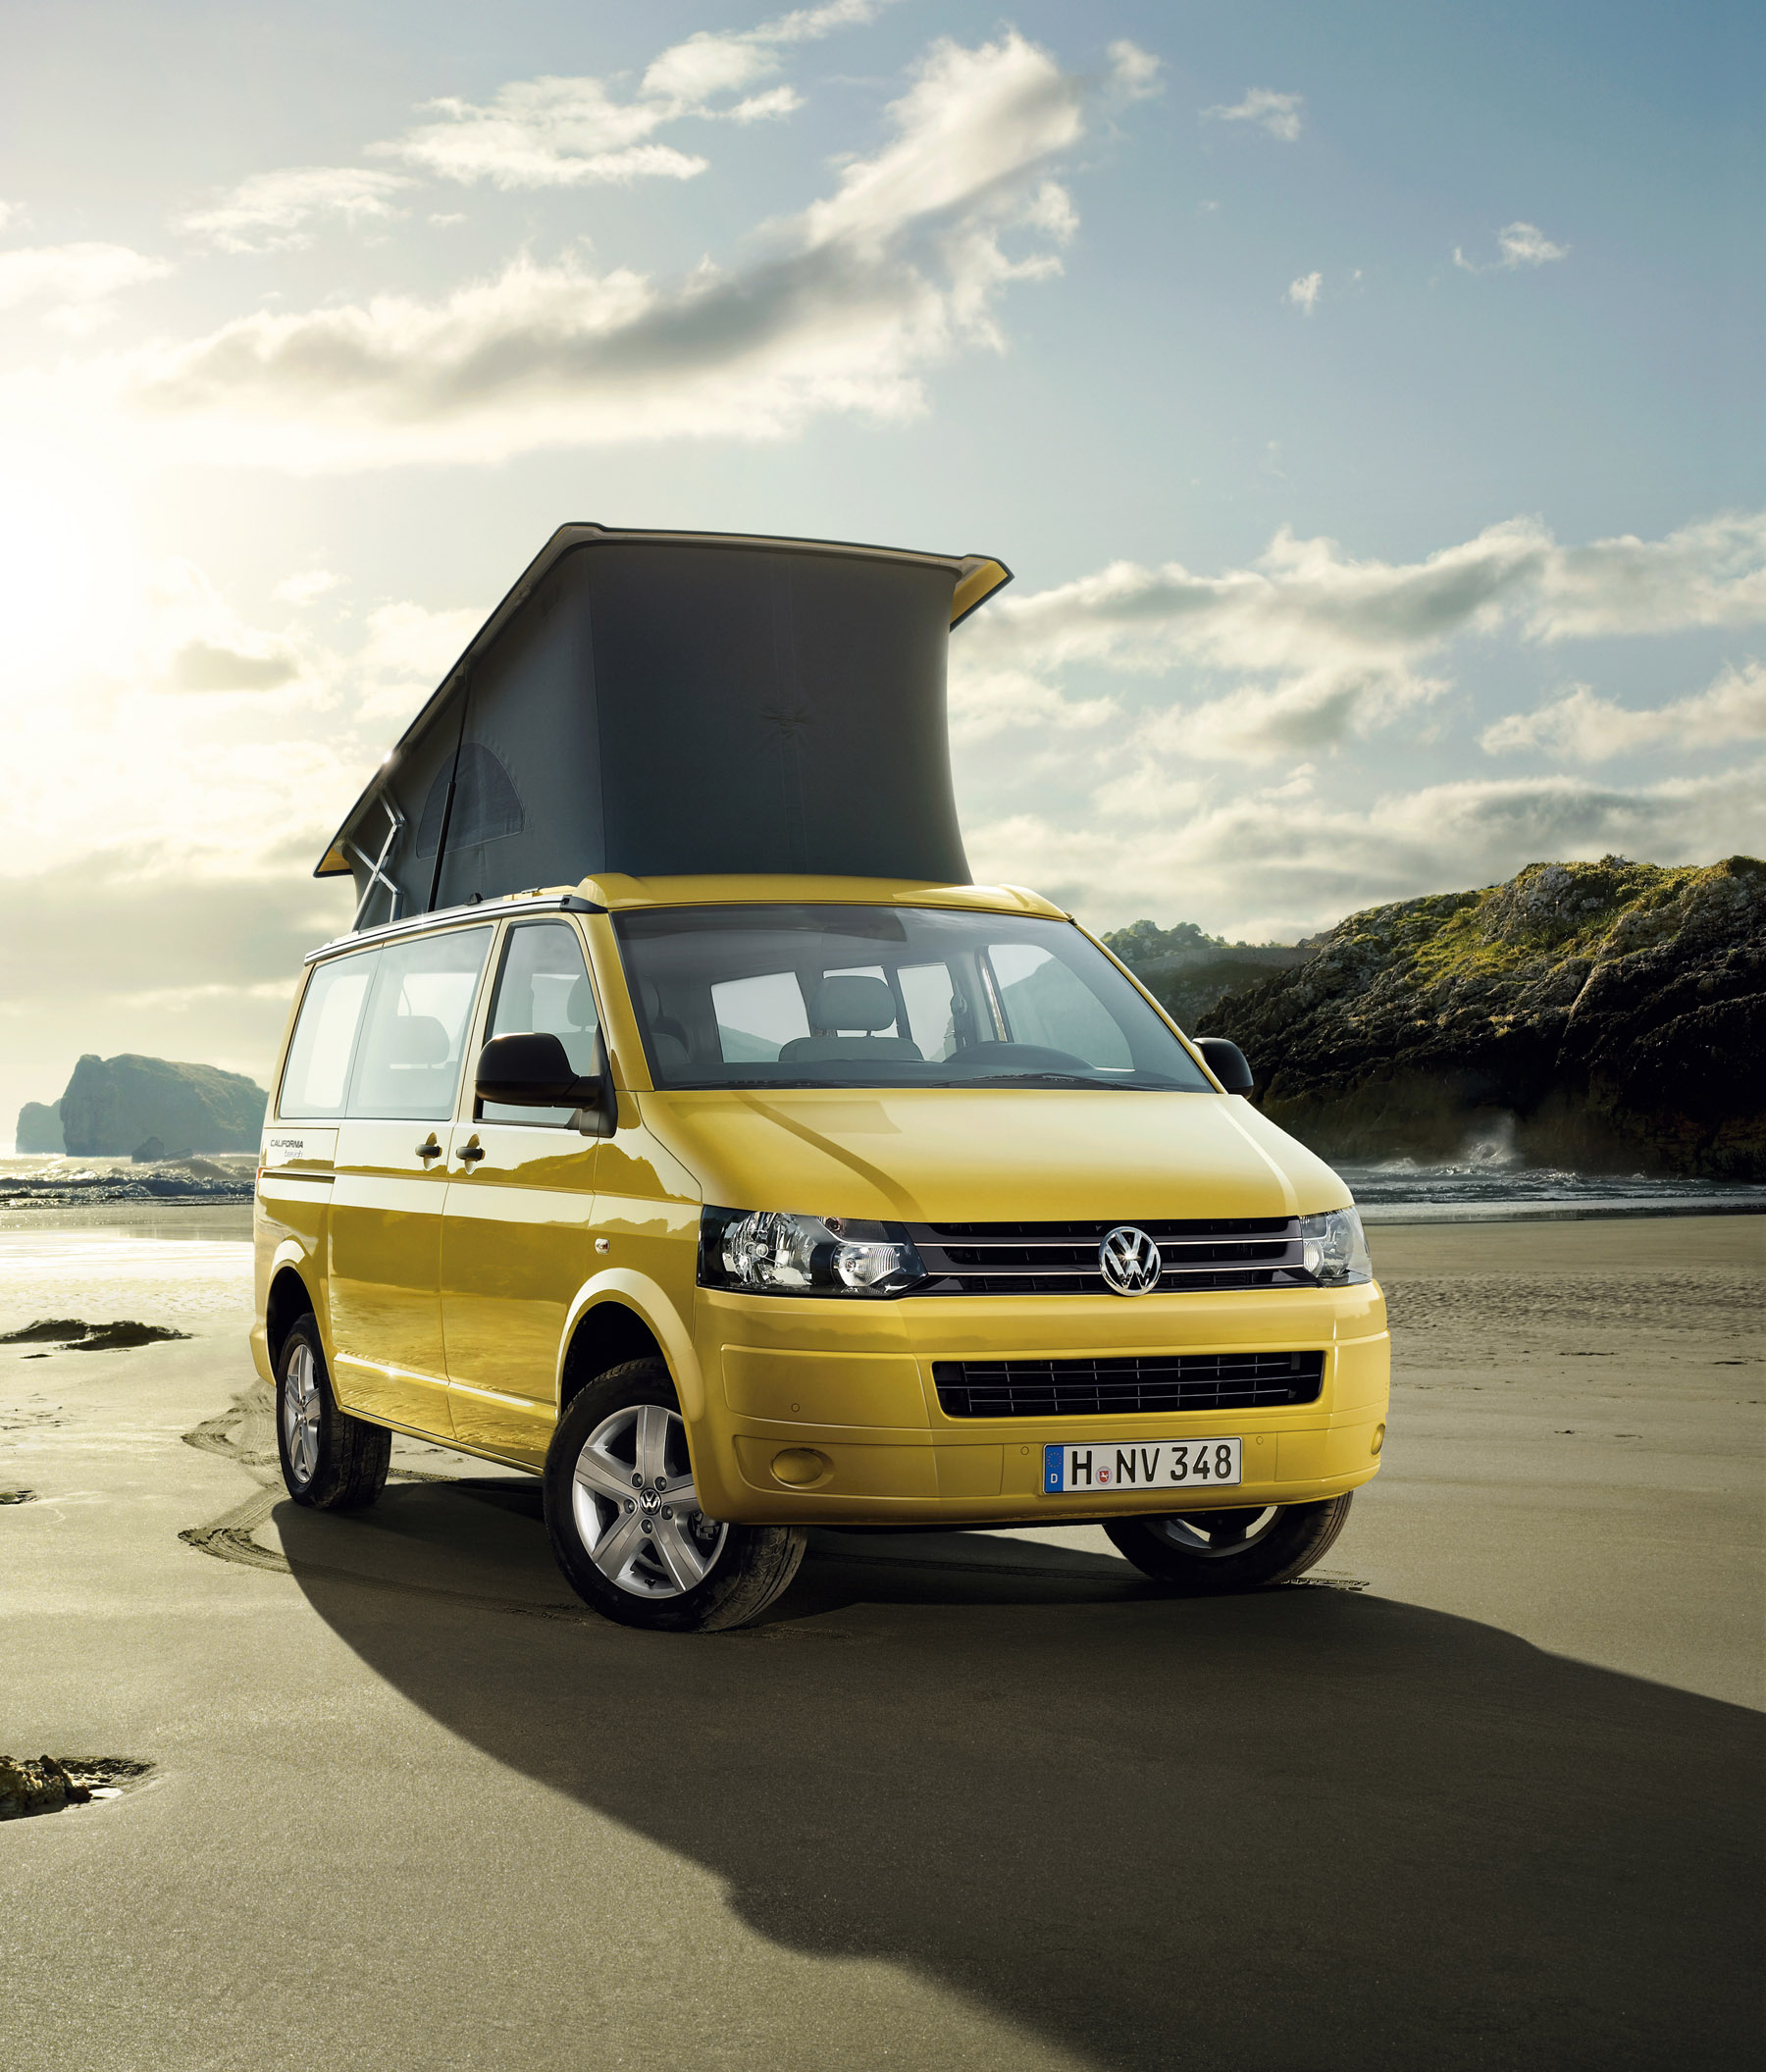 2012 volkswagen california beach price 34 970. Black Bedroom Furniture Sets. Home Design Ideas